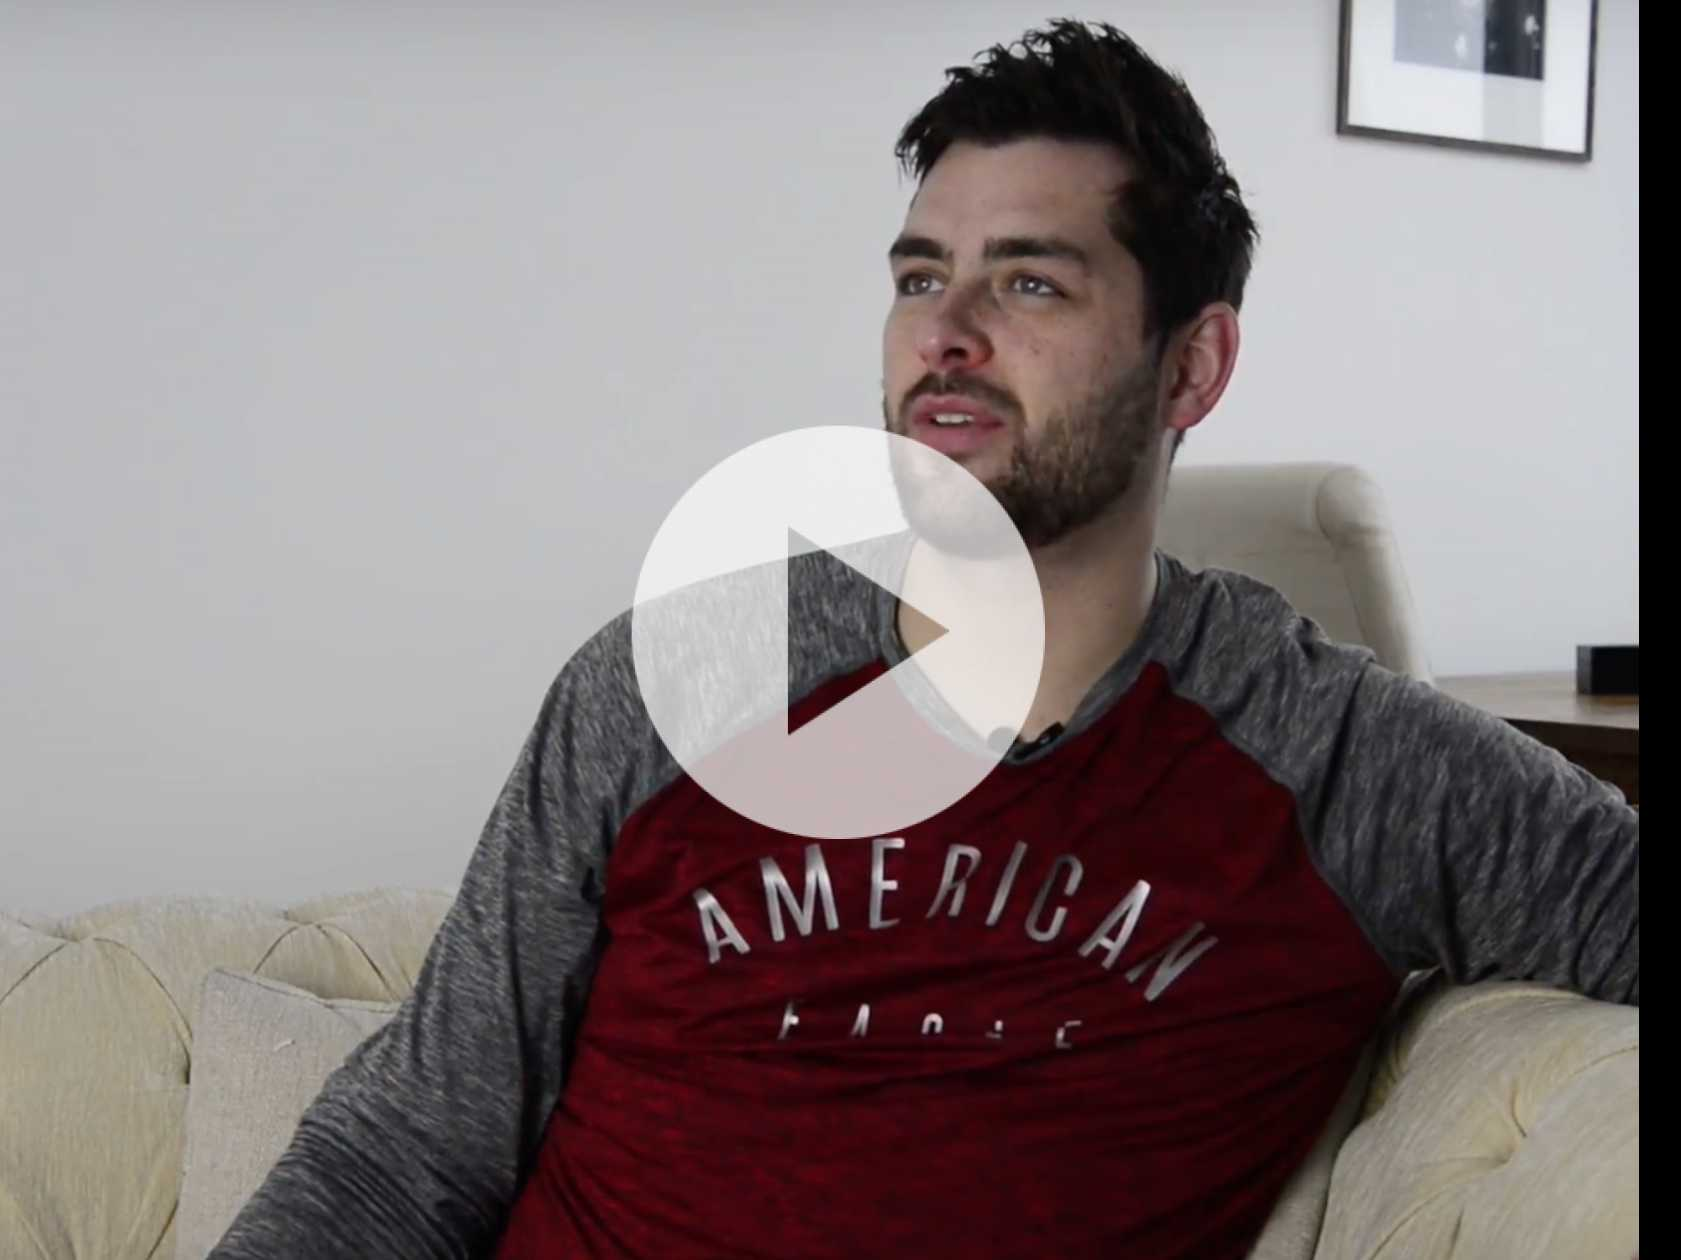 Watch: UK's Gay Fitness Challenge, Jon's Story